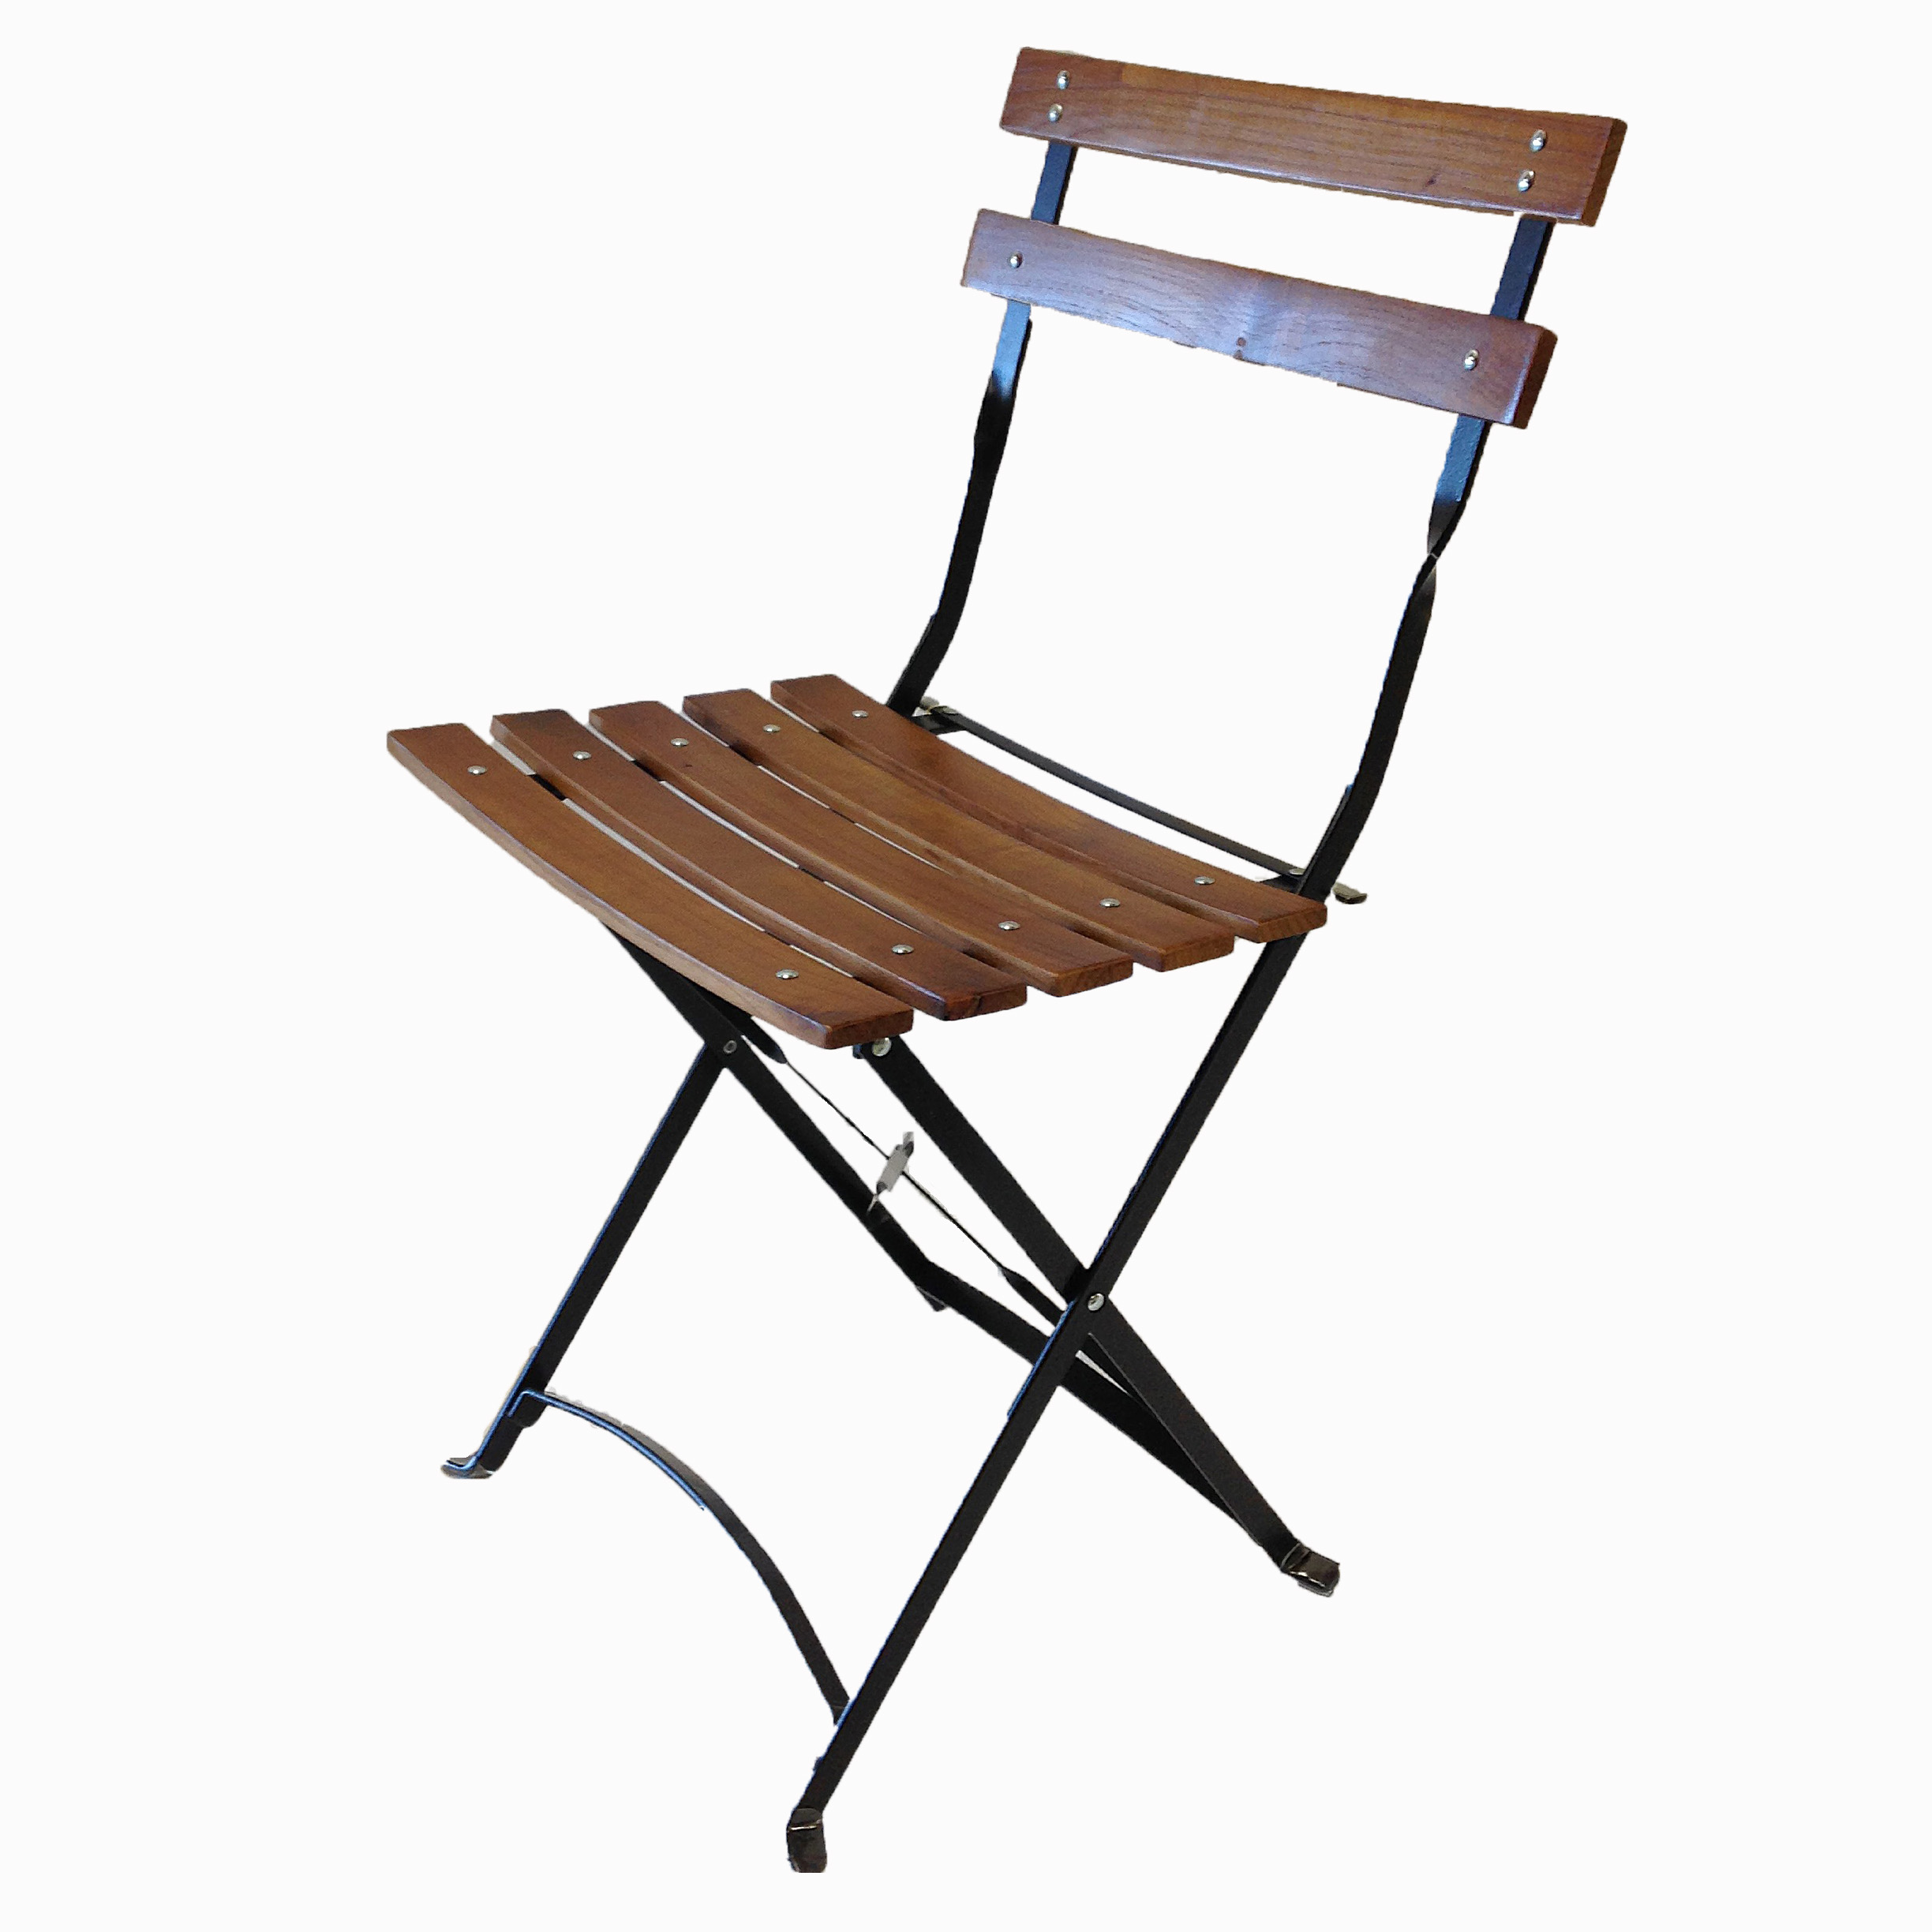 French bistro chairs metal - 1 5 French Bistro Metal Wood Folding Chair